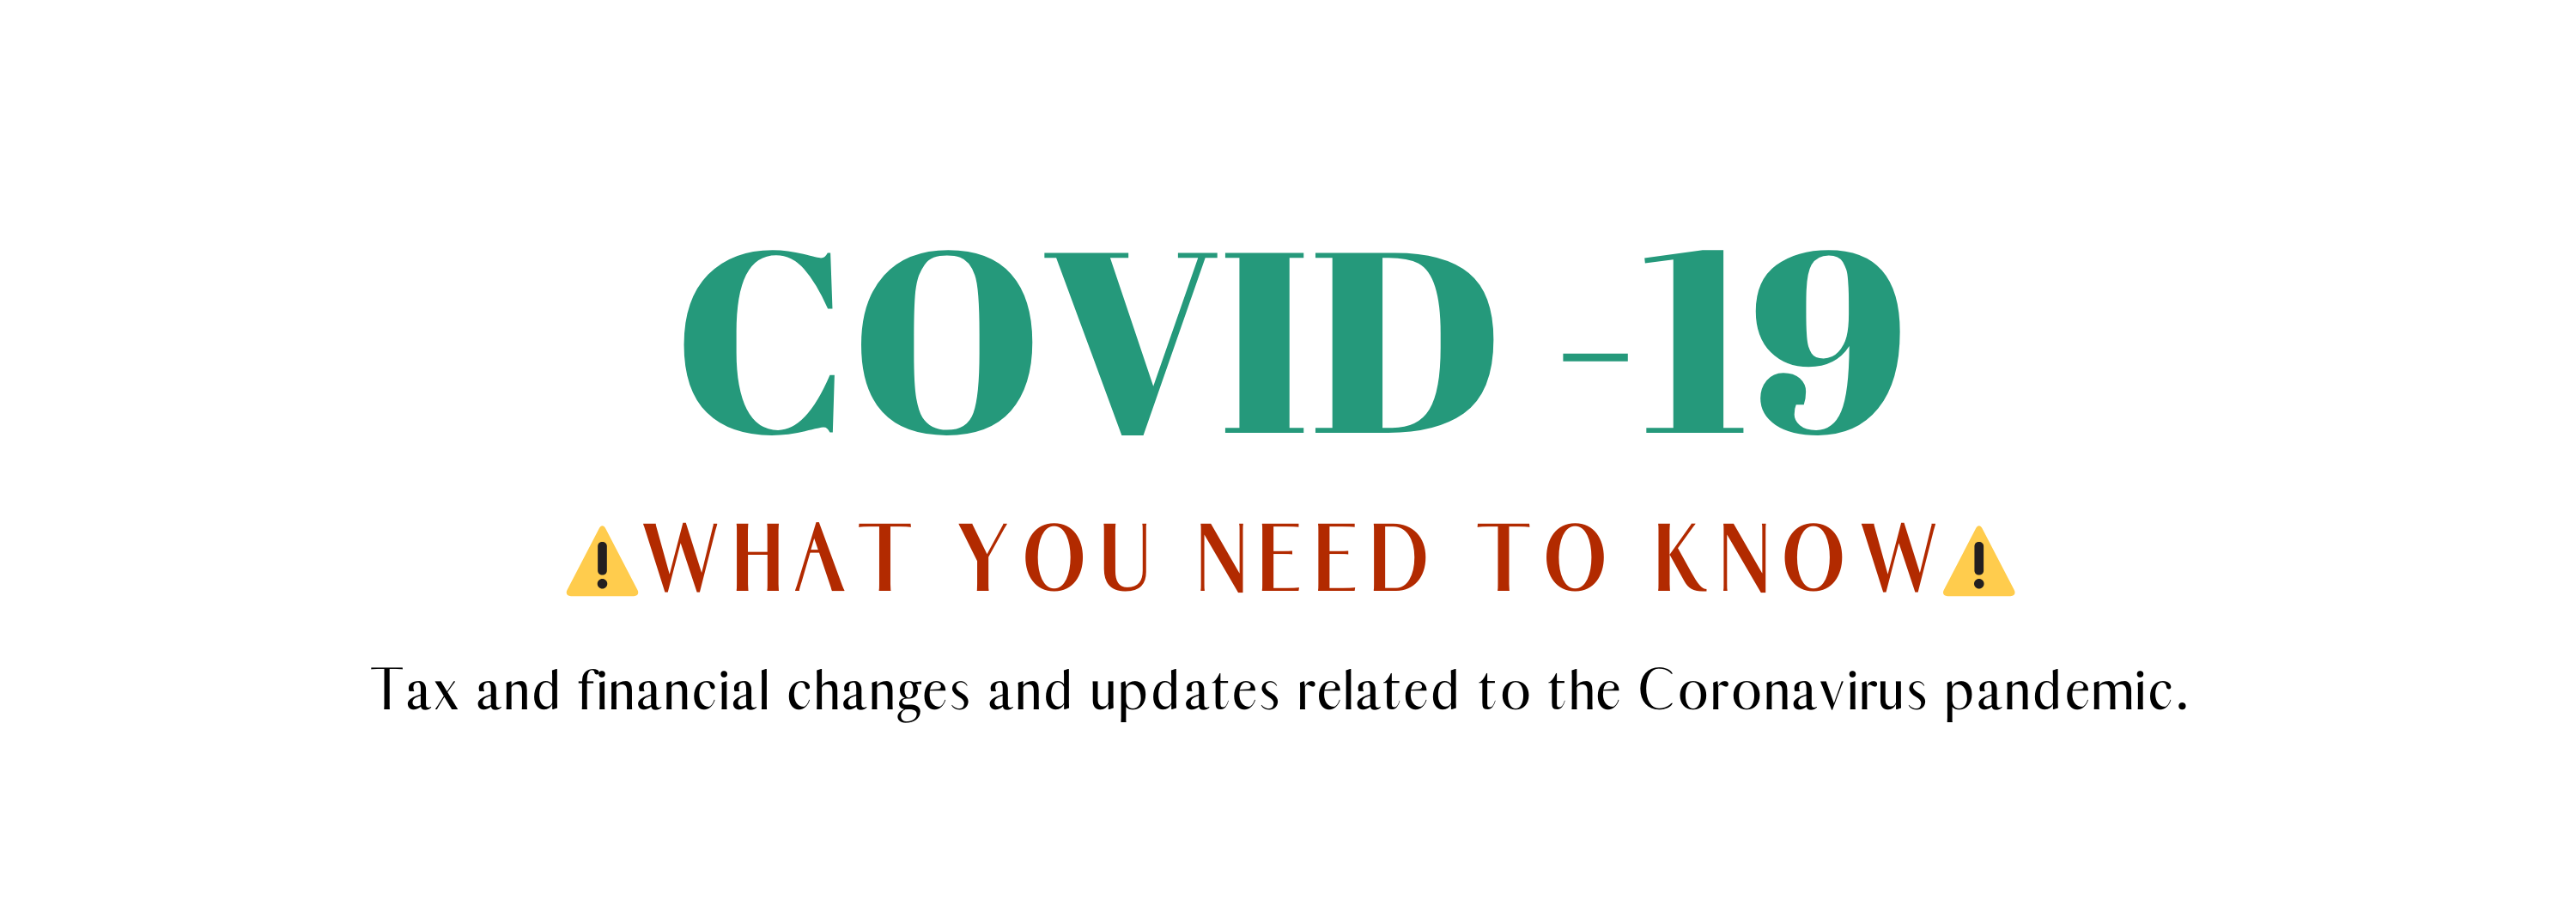 Copy of Copy of Copy of BTR- COVID-19 WEBPAGE HEADER